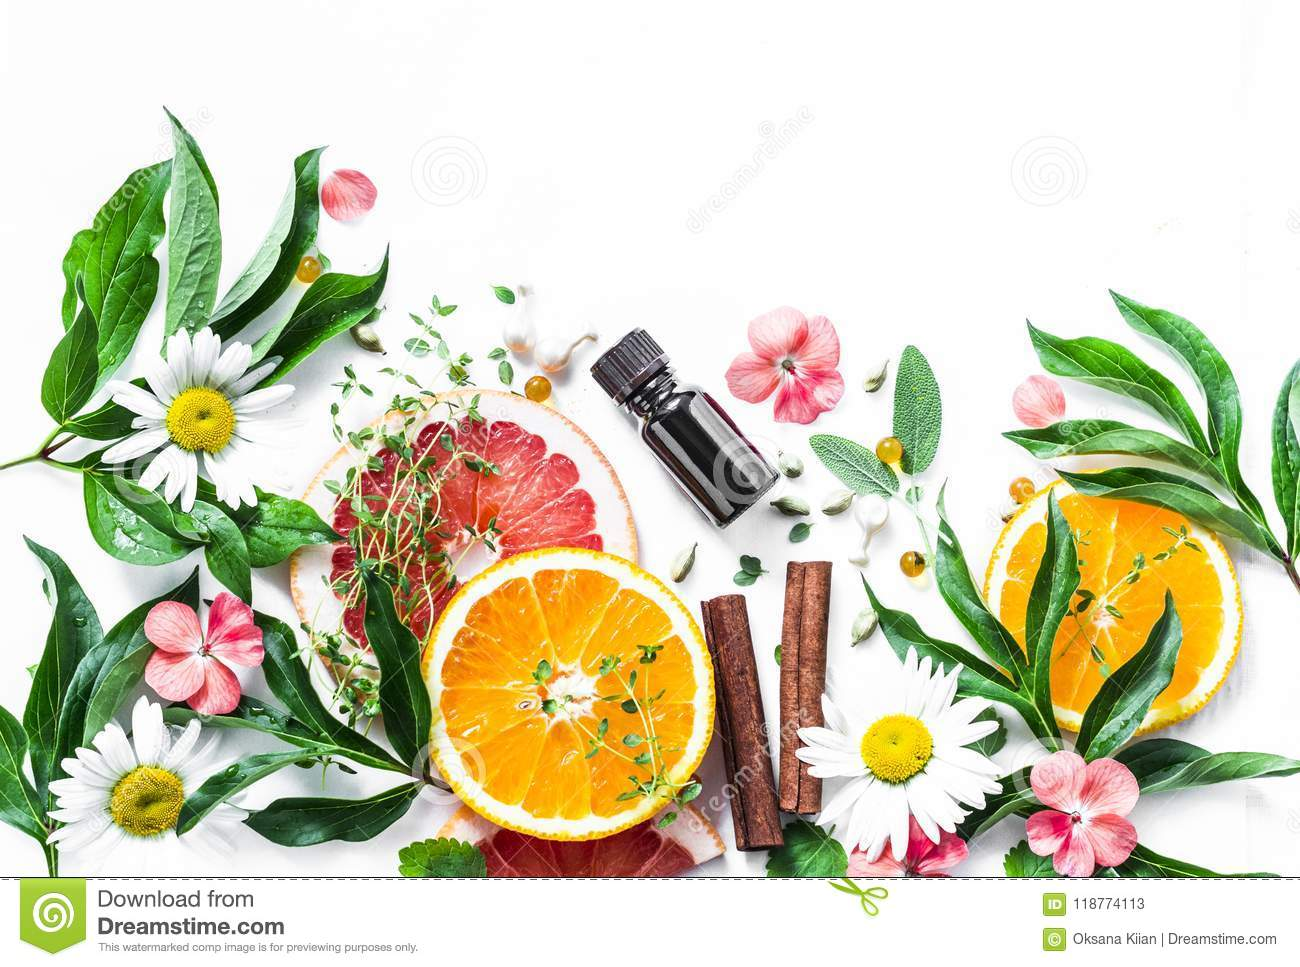 Essential oil for beauty skin. Flat lay beauty ingredients on a light background, top view. Beauty healthy lifestyle concept